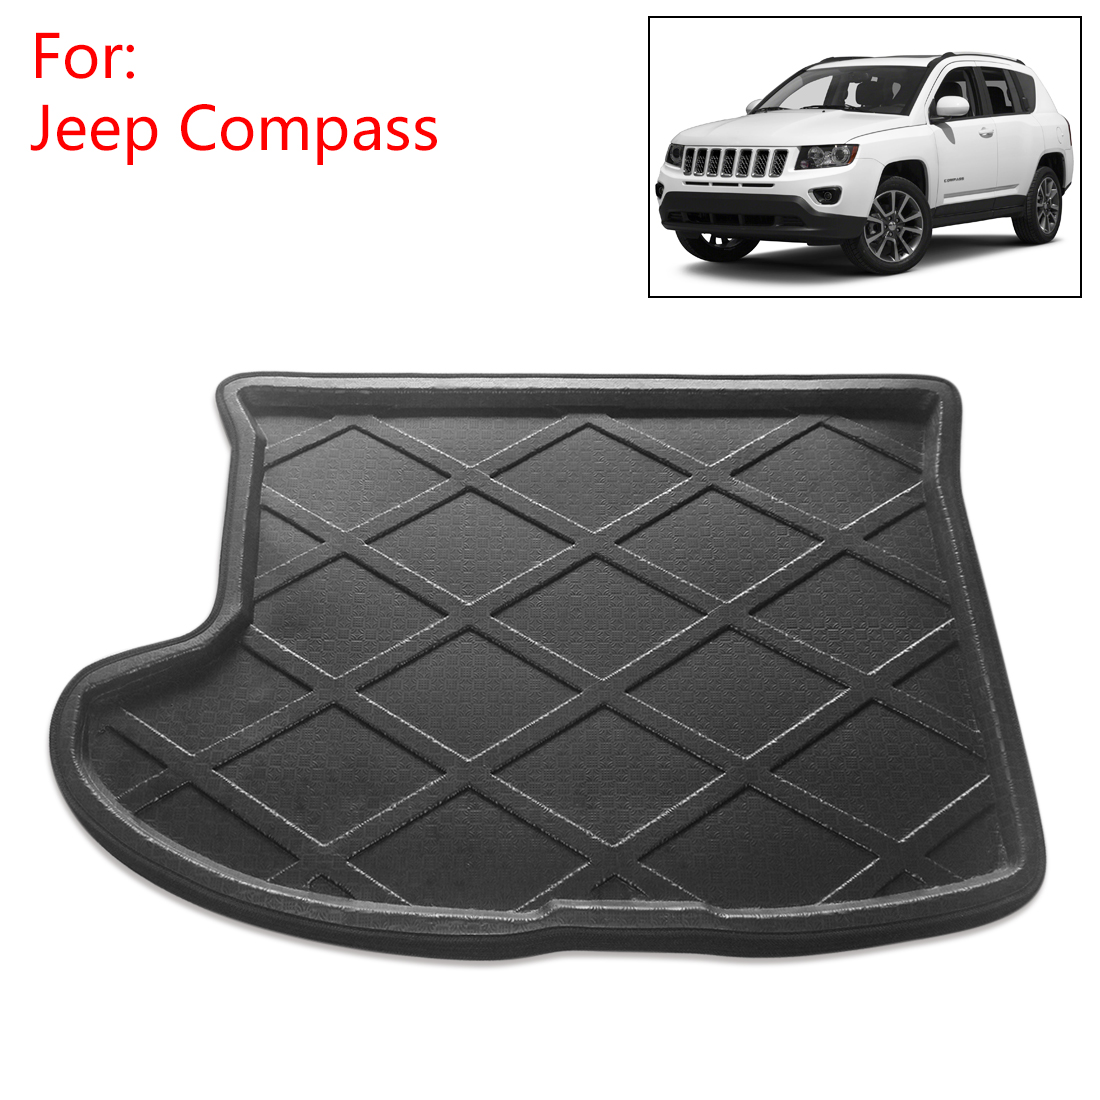 Car Rear Trunk Tray Liner Cargo Floor Mat Cover for Jeep Compass 2007-2016, Black